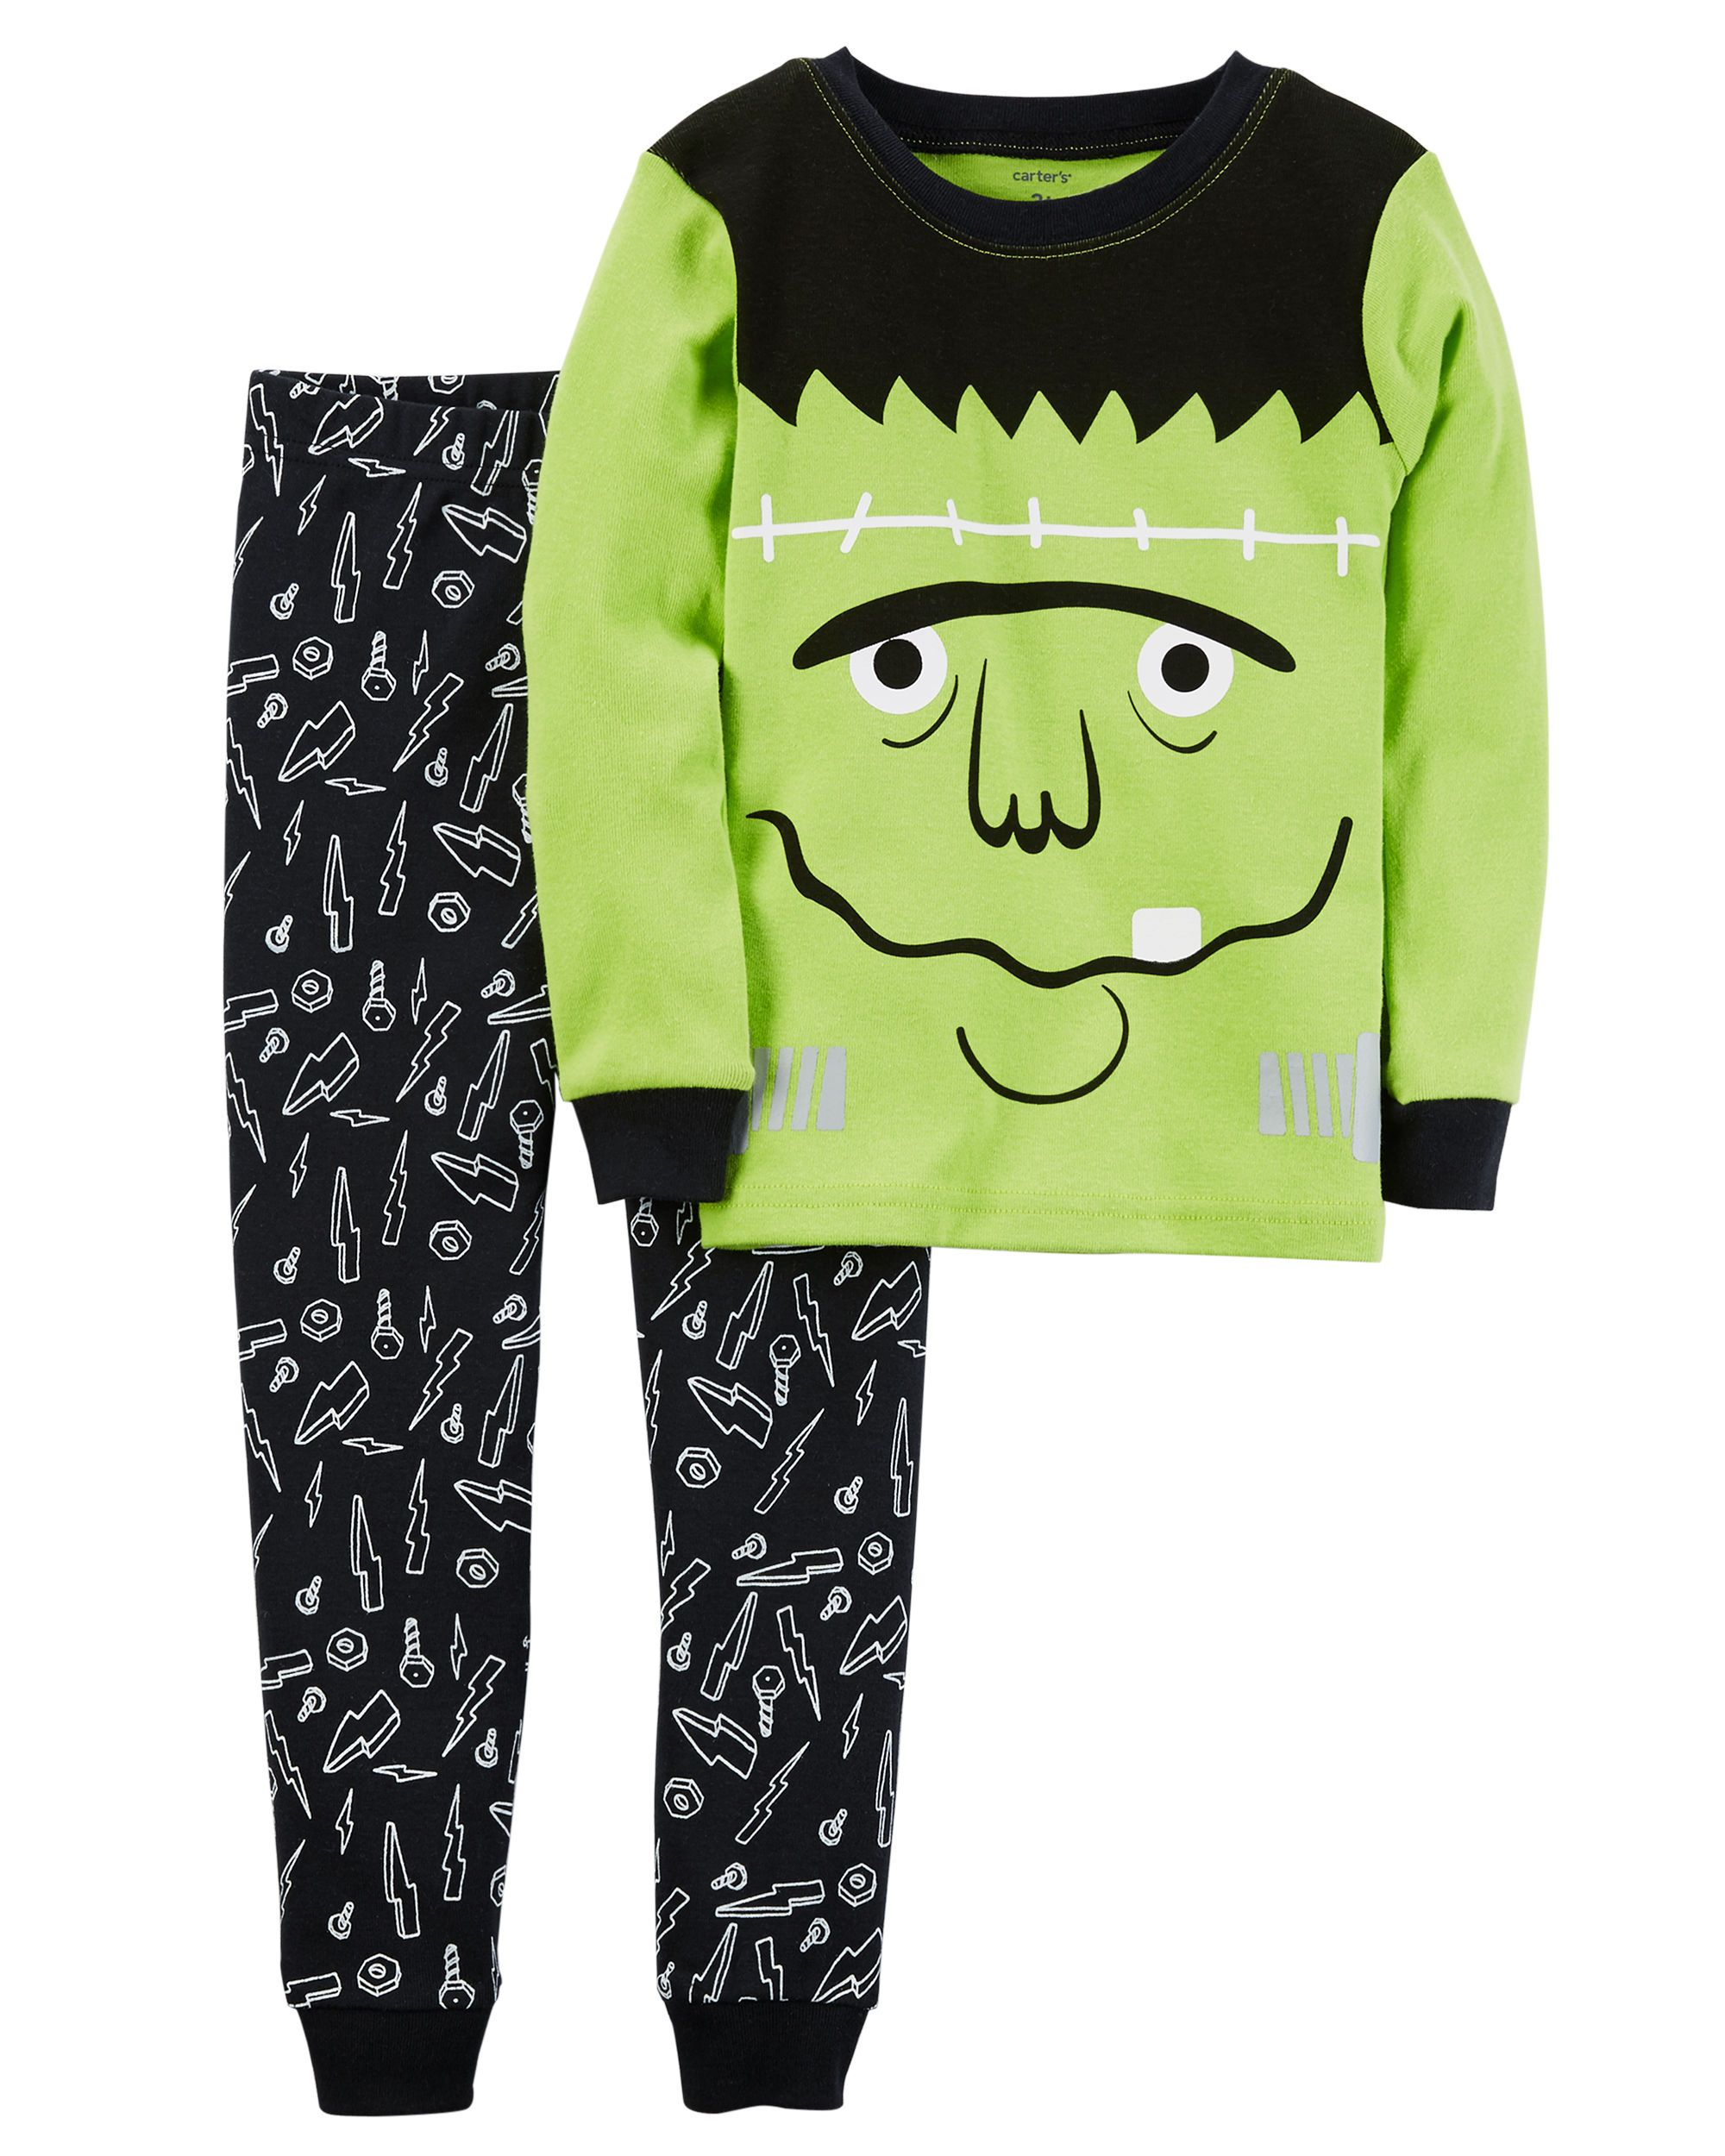 ed5d93657466 2-Piece Frankenstein Snug Fit Cotton Halloween PJs